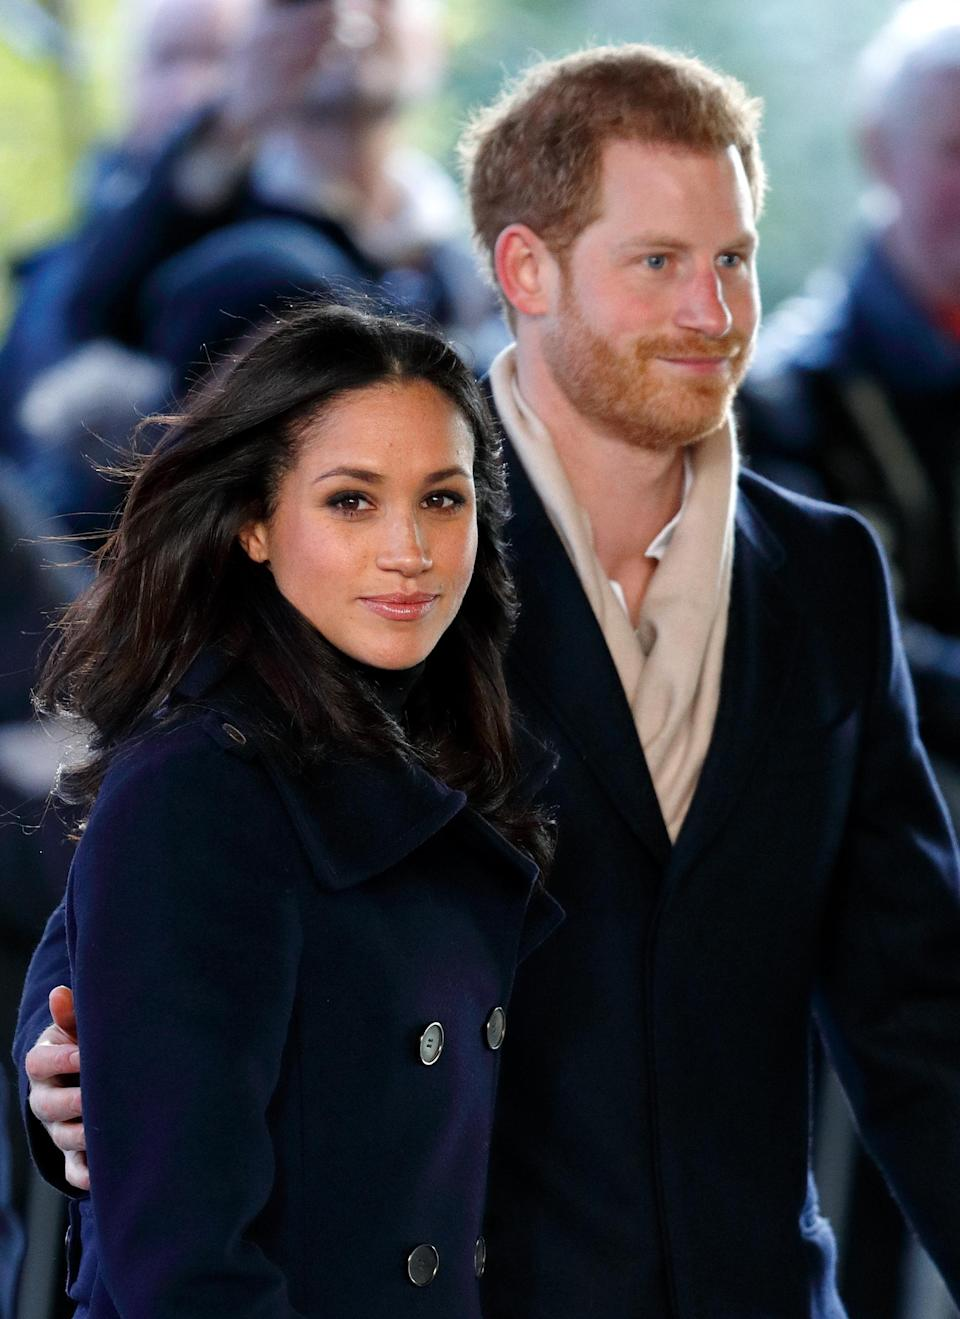 <p>Meghan Markle, 36, and Prince Harry, 33, got engaged in late November — and it's no secret the gorgeous actress has broken a number of unwritten royal traditions over the course of their year-and-a-half whirlwind courtship. Now, she's set to break another unwritten royal rule by celebrating Christmas festivities with Harry and his family (including the Queen!)</p>